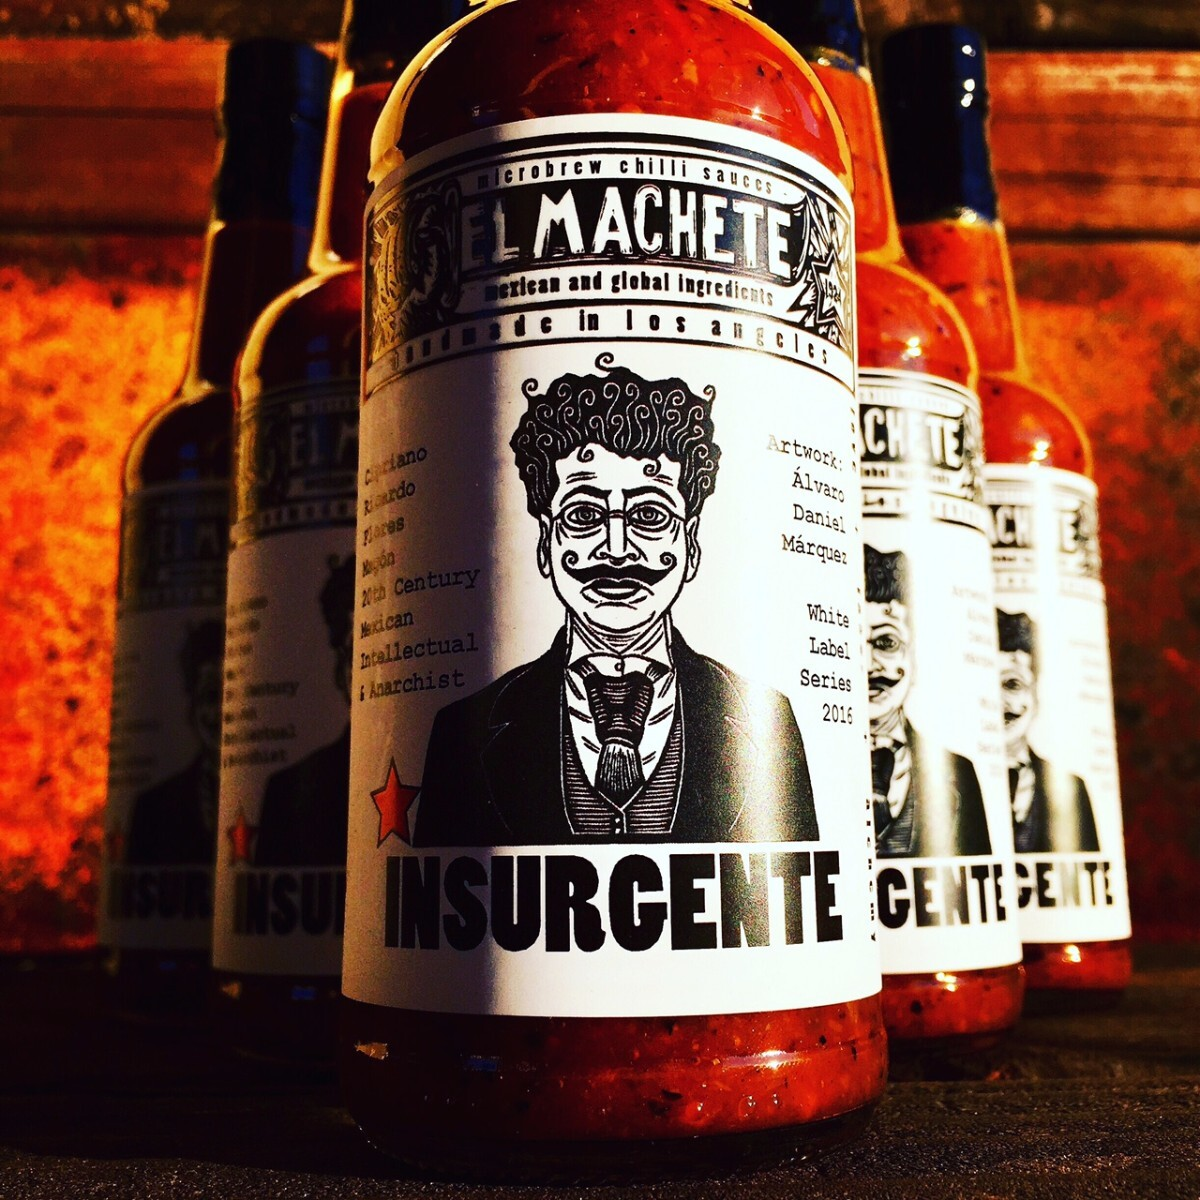 The Insurgente hot sauce uses artwork by Alvaro Daniel Marquez | Courtesy of El Machete